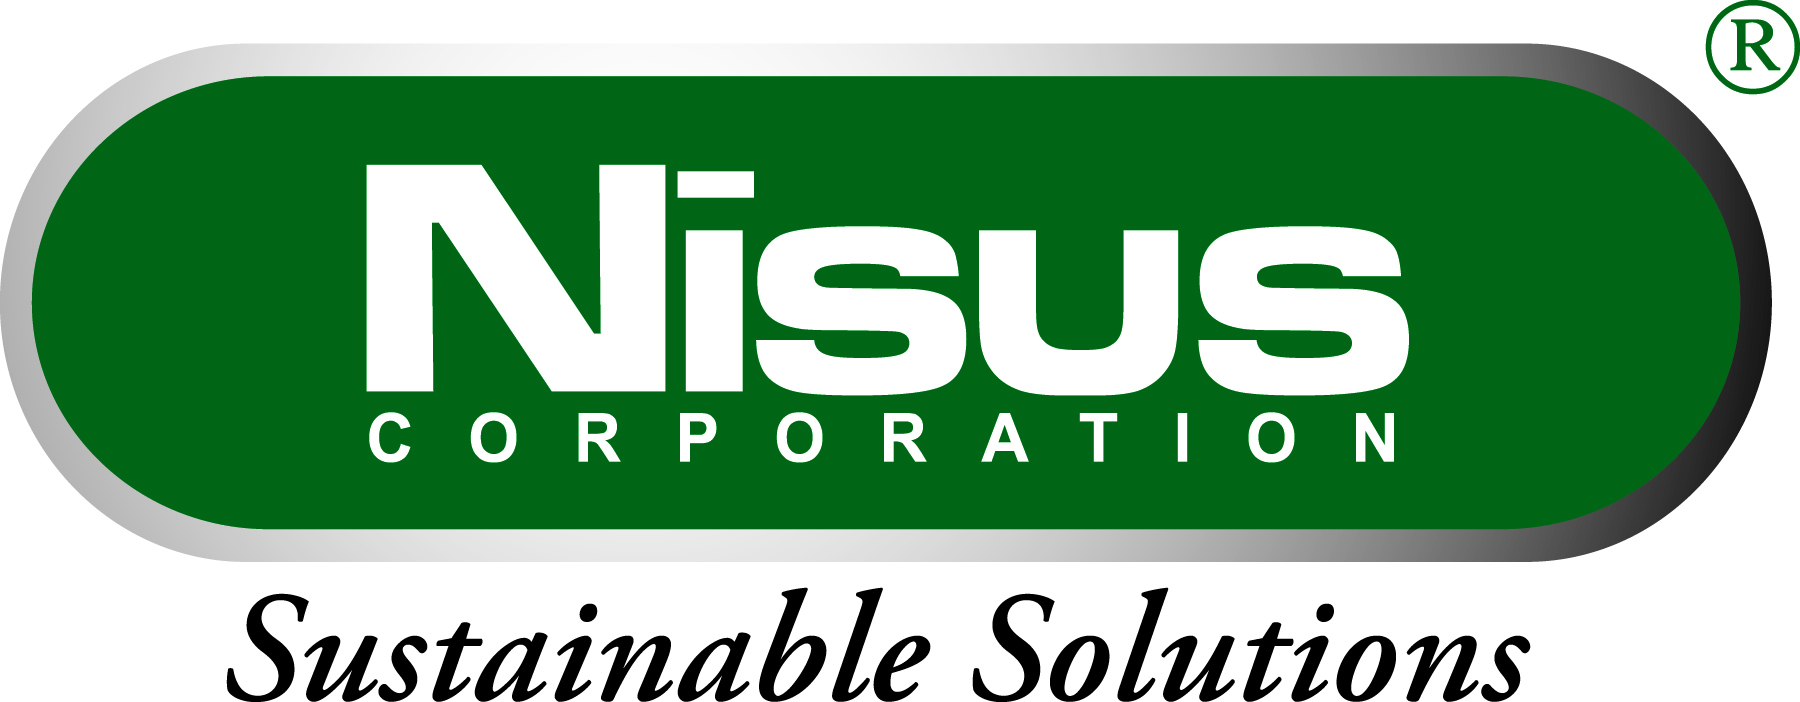 Nisus Sustainable Solutions Logo CMYK 300dpi